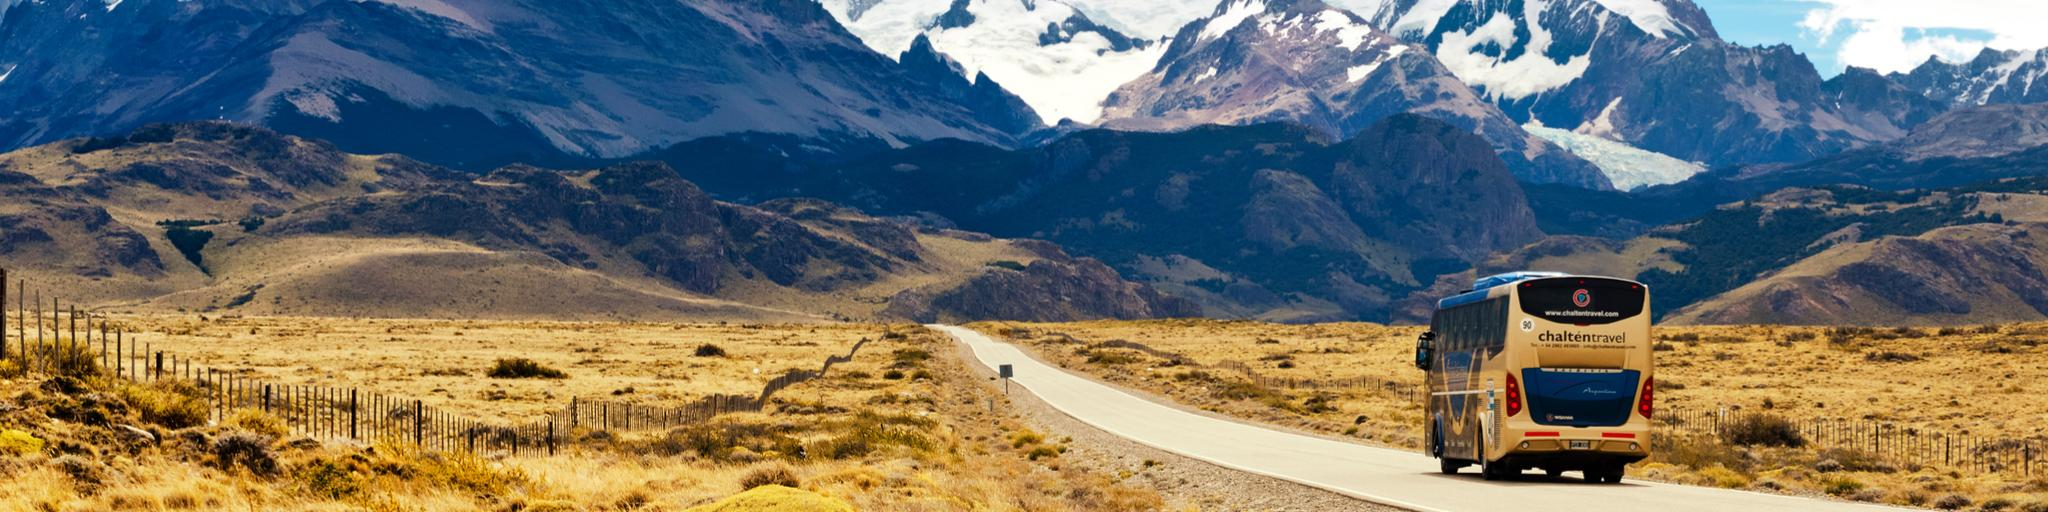 A bus driving along a deserted road towards some snow-capped mountains in Argentina